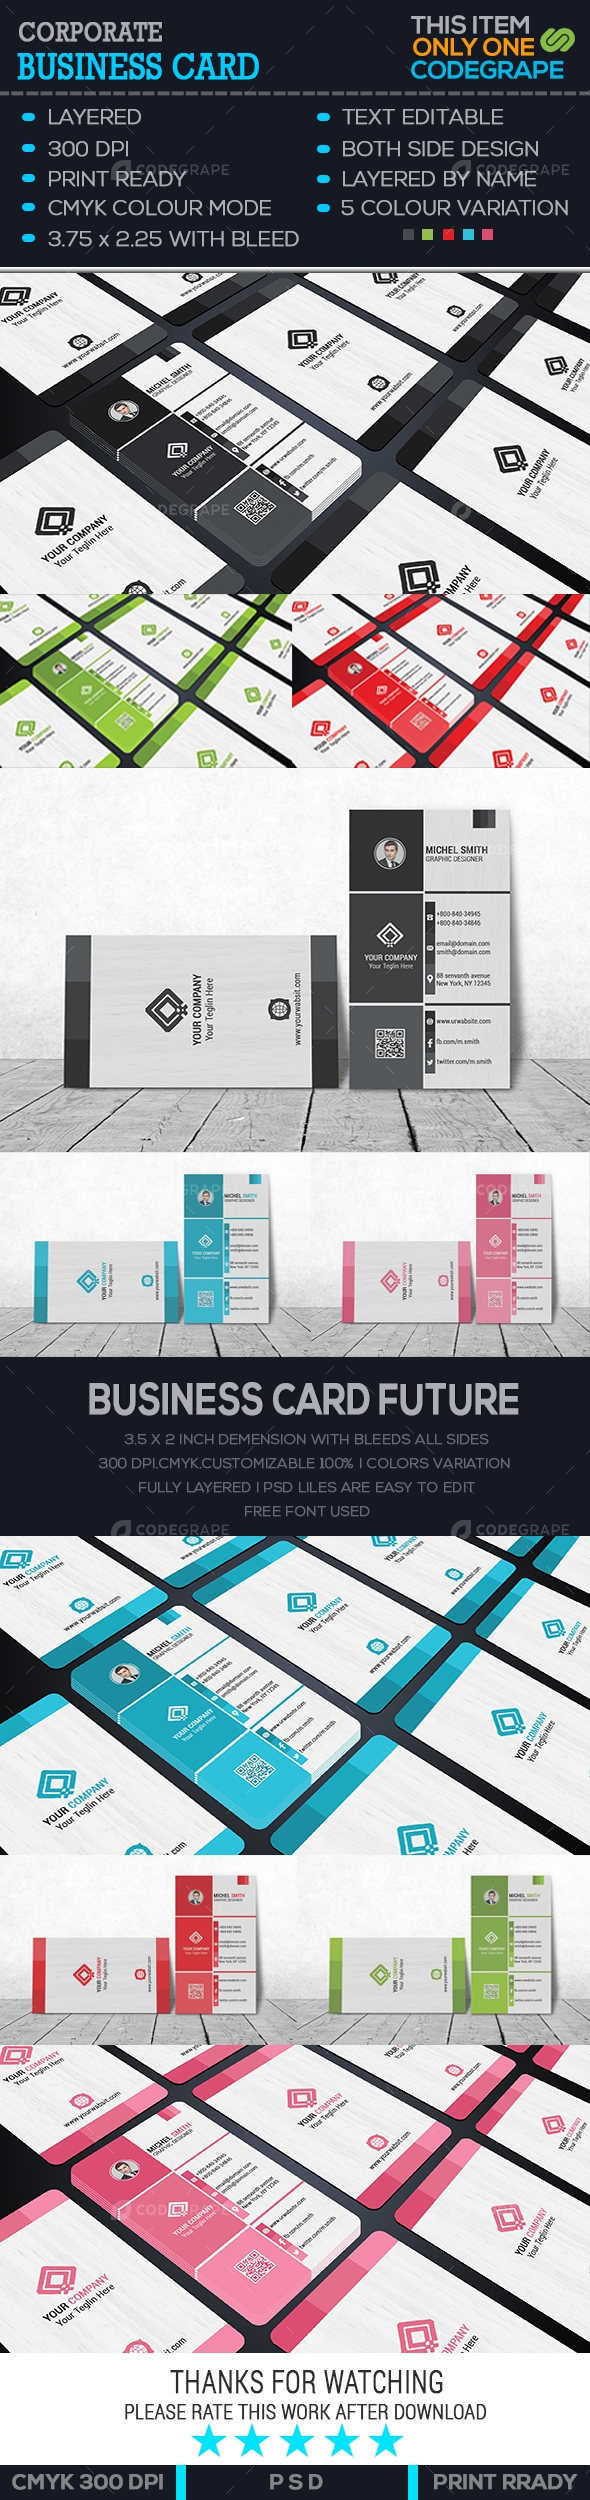 Business Card - Print | CodeGrape